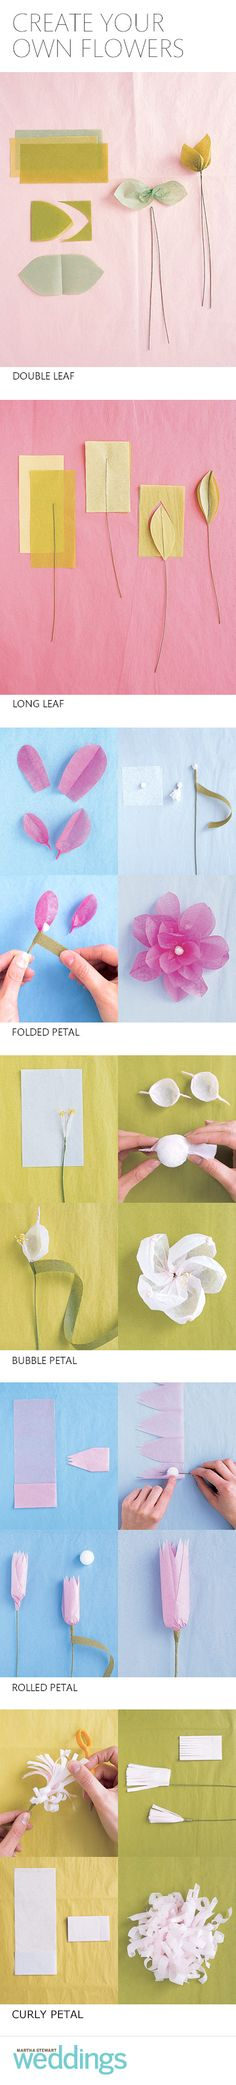 Learn how to craft these paper flowers your wedding DIY Flores de papel para… Handmade Flowers, Diy Flowers, Fabric Flowers, Diy Paper, Paper Crafts, Diy Crafts, Paper Art, How To Make Paper Flowers, Tissue Paper Flowers